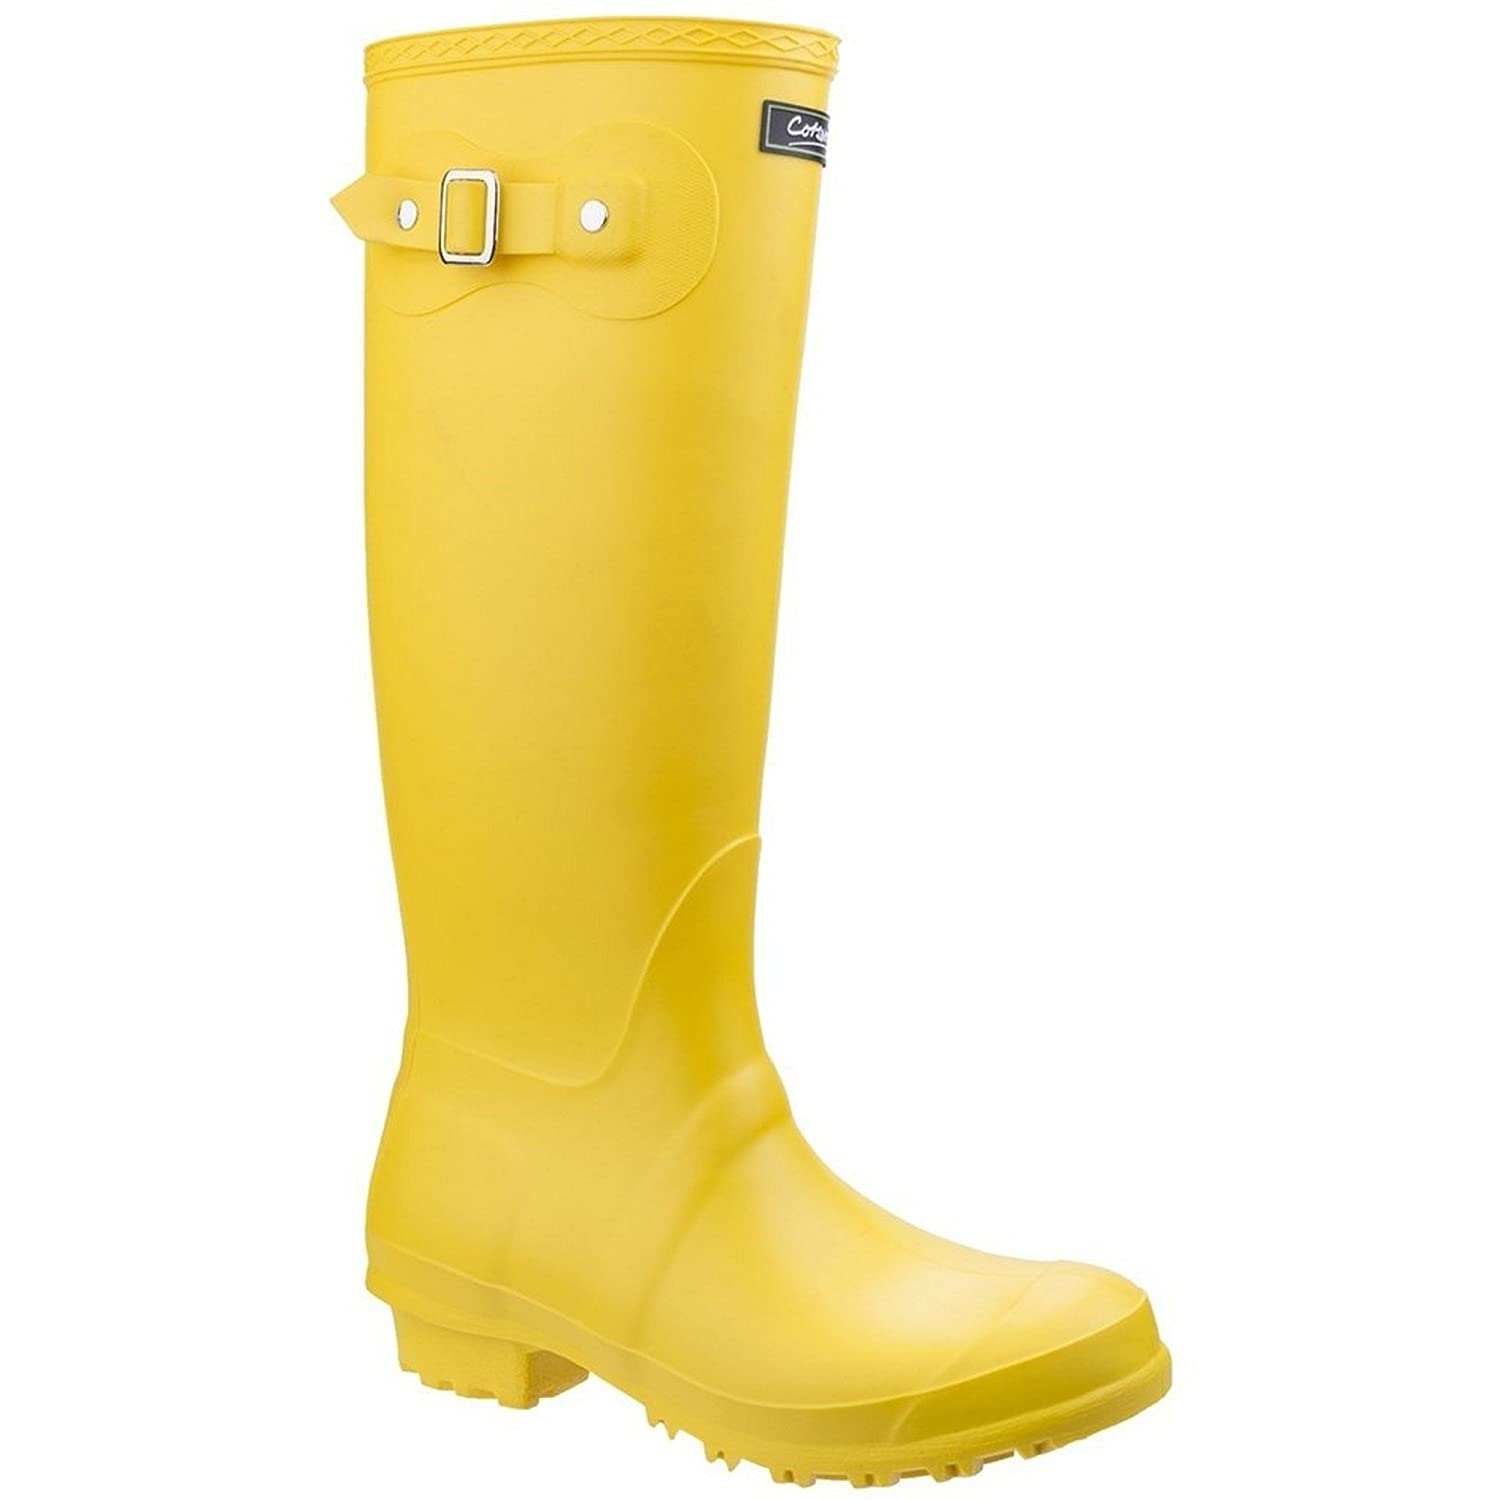 Cotswold Sandringham Buckle-Up Womens Wellington Boots B07C45978P 5 M US|Yellow